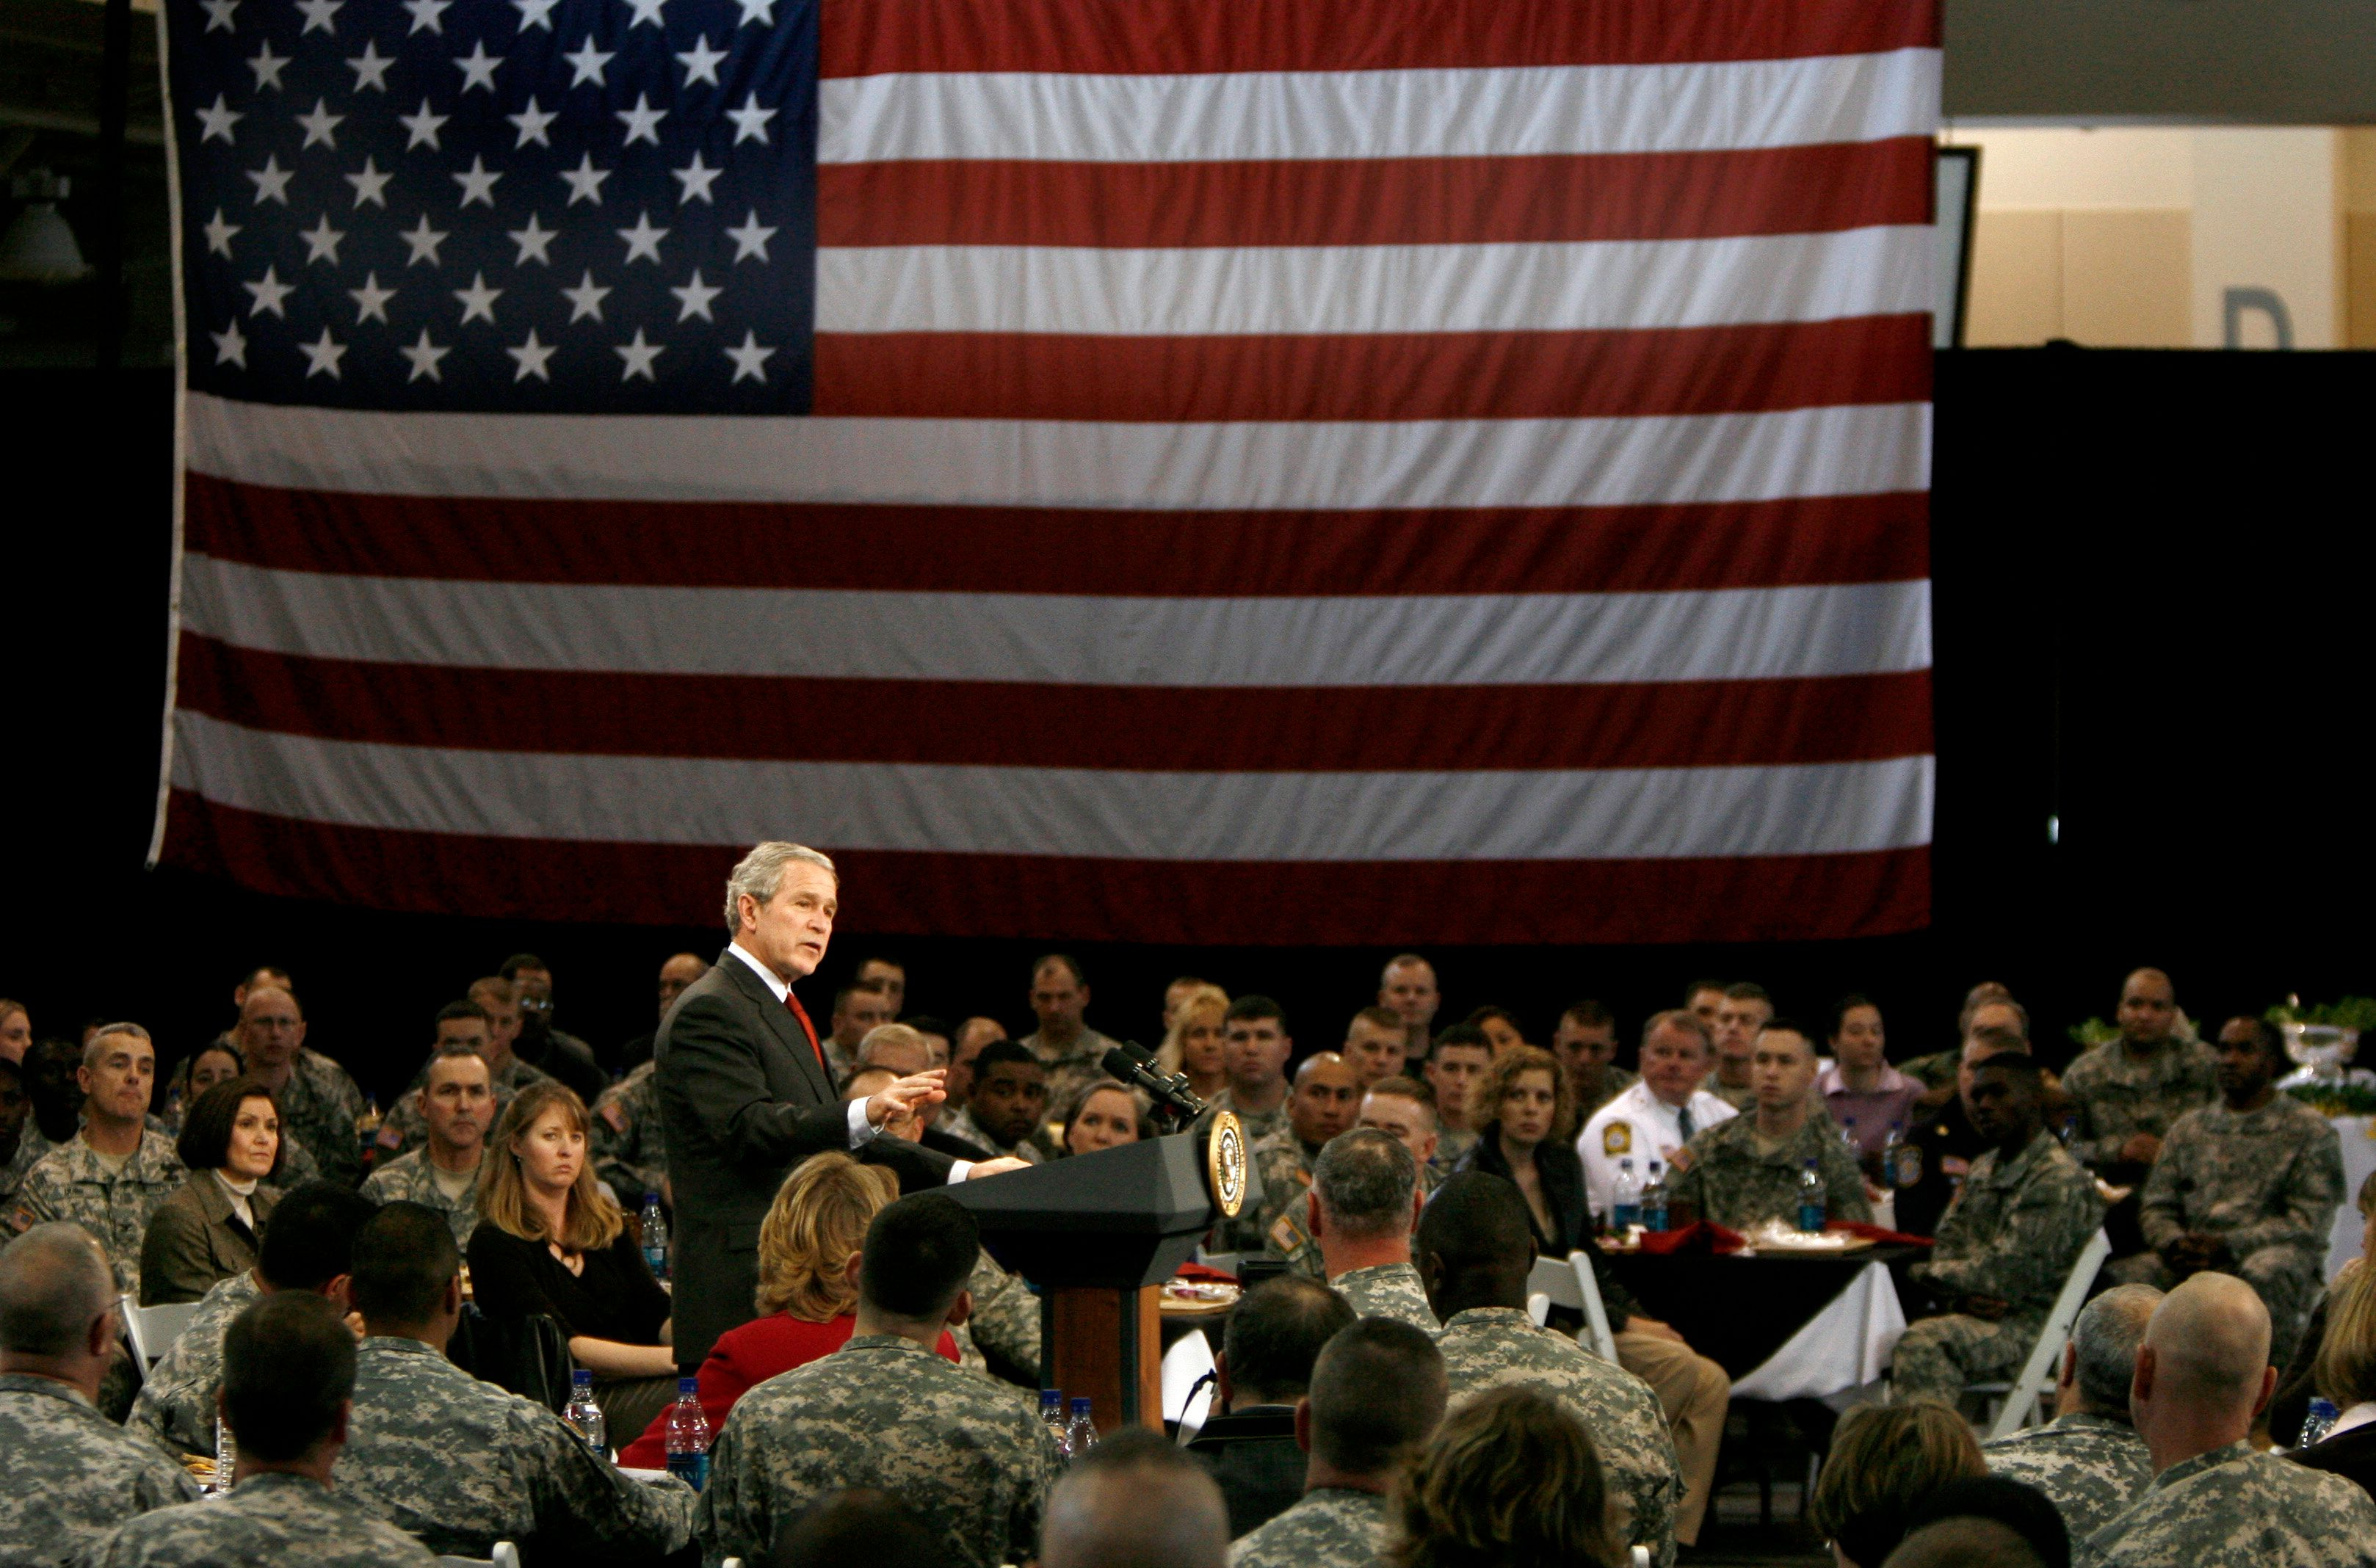 U.S. President George W. Bush speaks to U.S. troops and their families after having lunch with them at Fort Benning, Georgia, January 11, 2007. Bush's visit comes a day after a live television address on his administration's U.S. military strategy and the situation in Iraq from White House.     REUTERS/Jason Reed  (UNITED STATES)